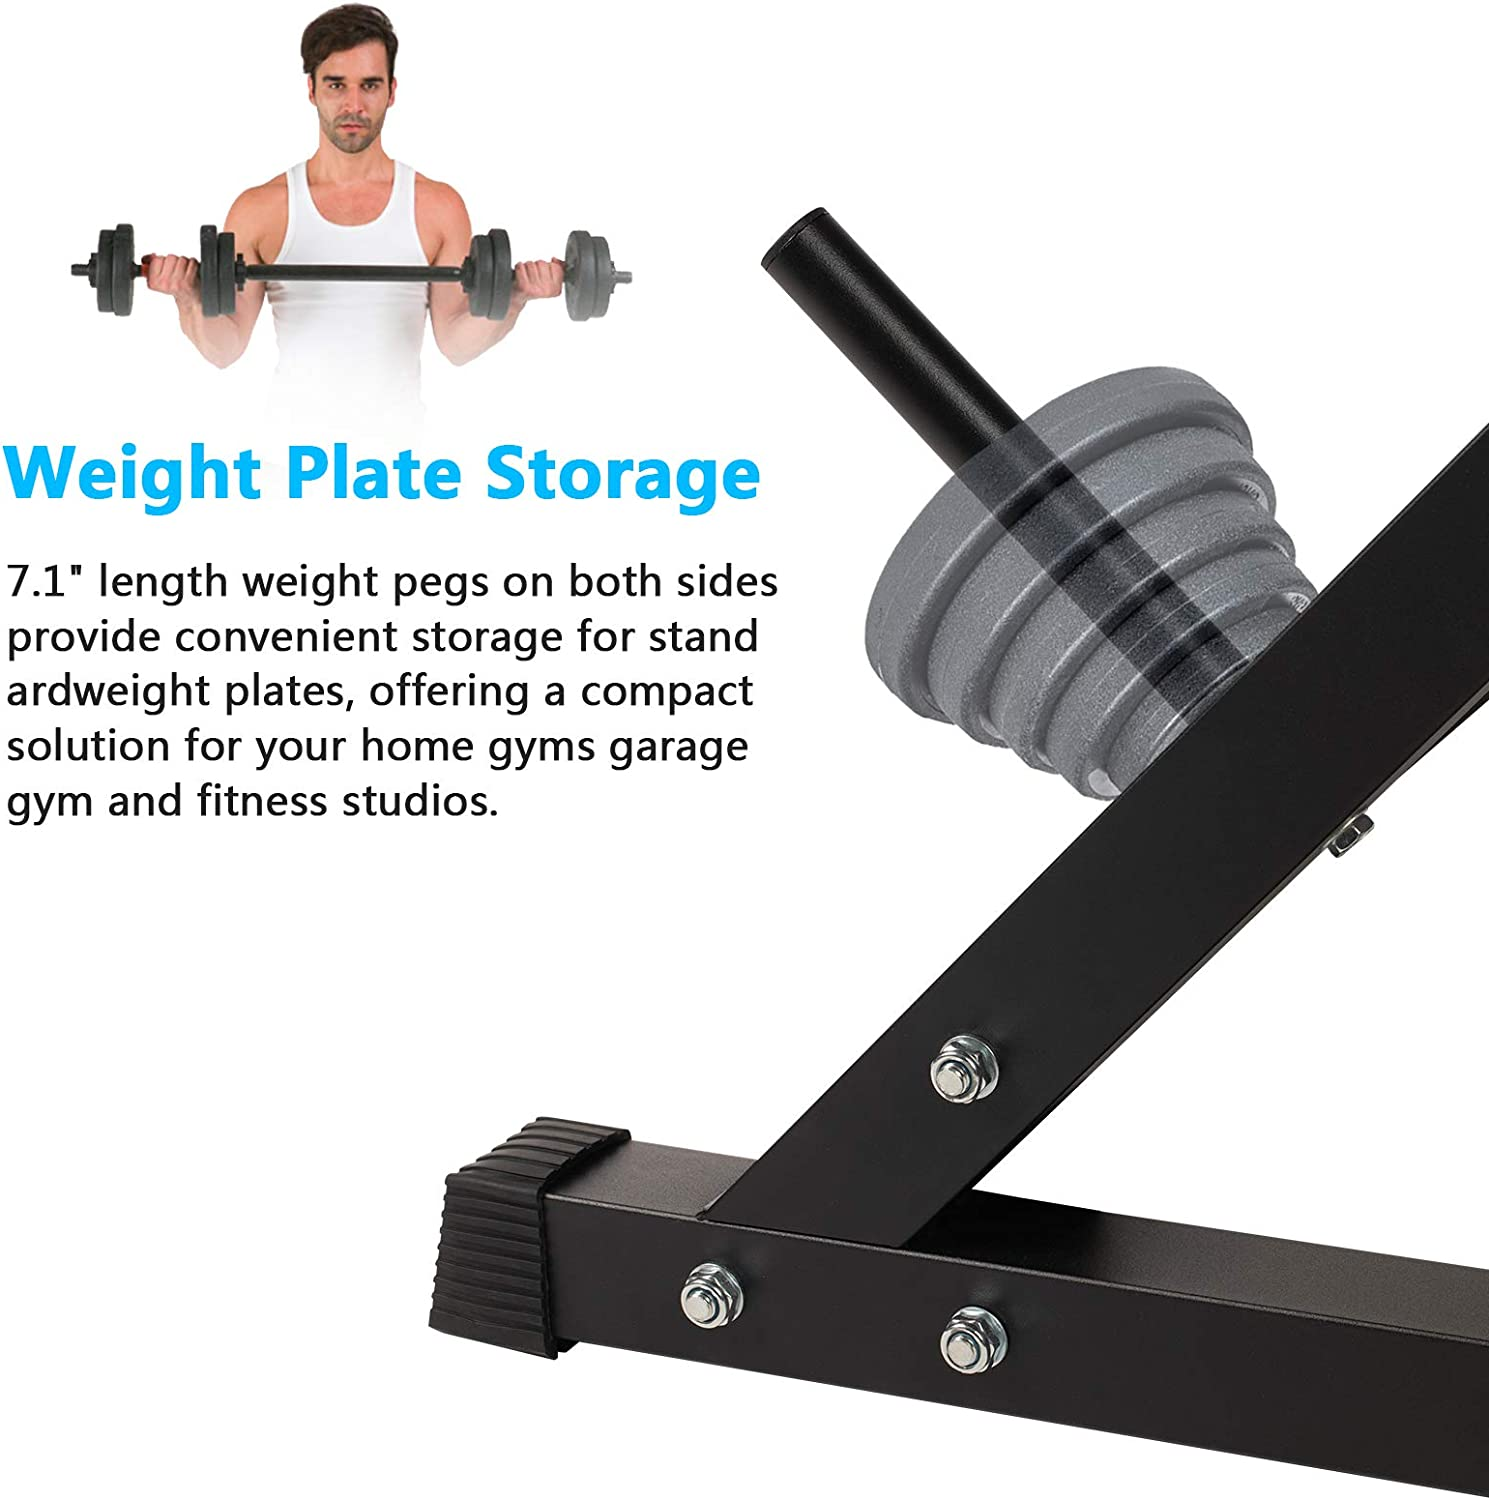 Weanas Squat Barbell Rack Adjustable Bench Press Rack 600LBS Max Load Multi-Function Weight Lifting Home Gym